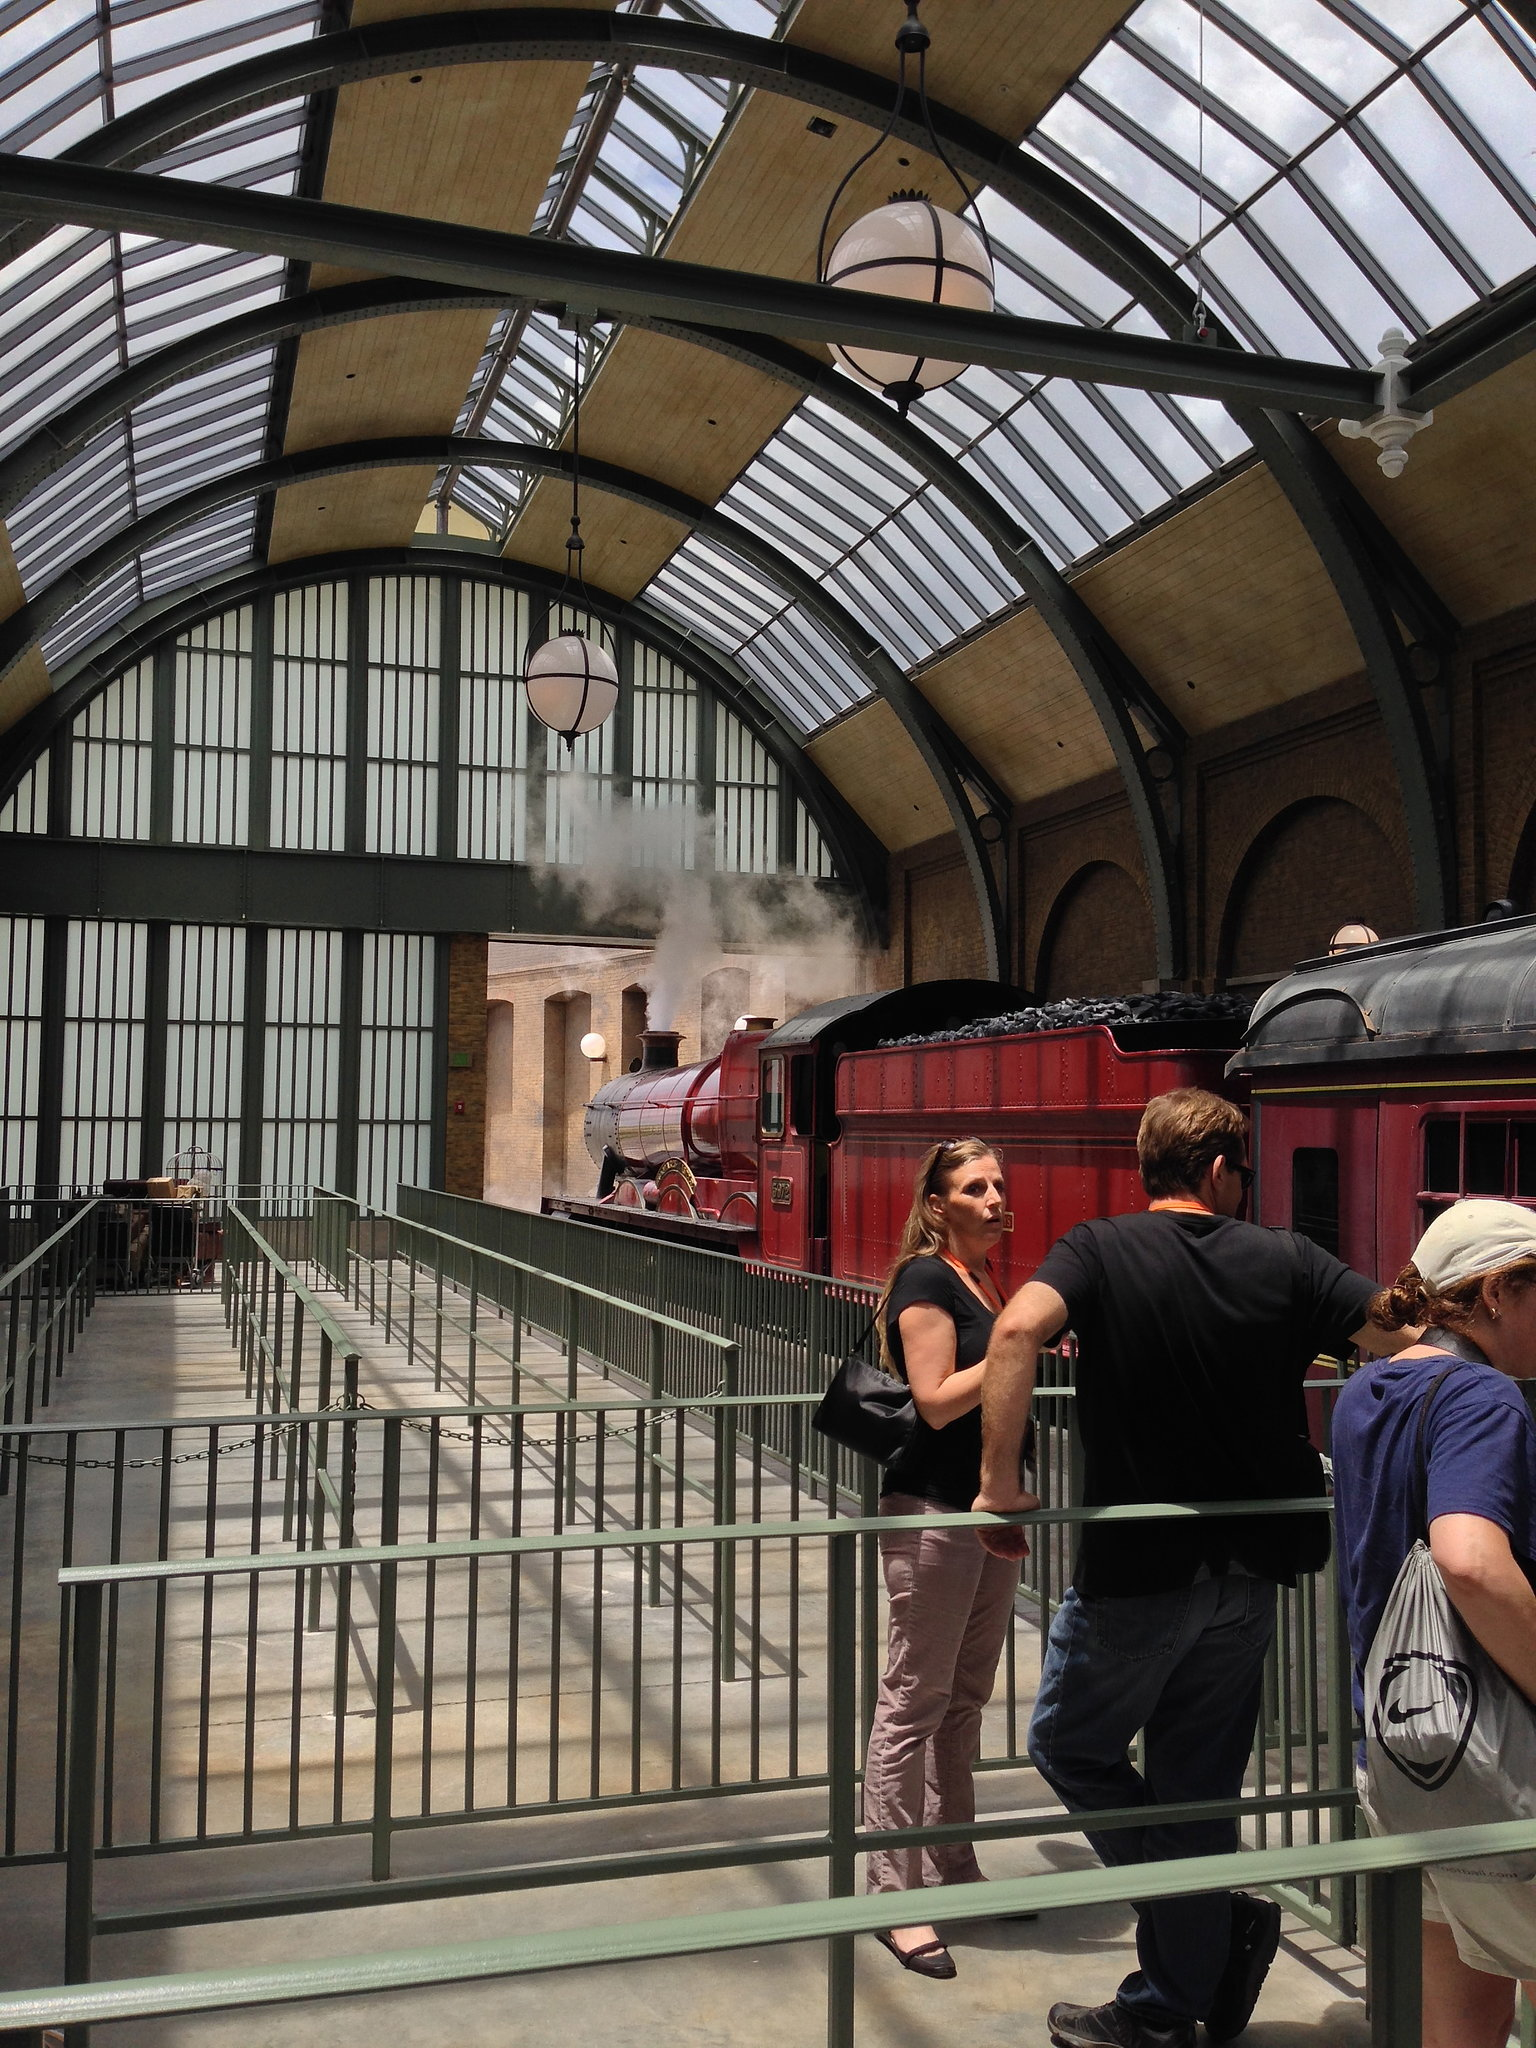 The Hogwarts Express is a real, full-size train that takes you from Diagon Alley to Hogsmeade, the original park for The Wizarding World of Harry Potter.